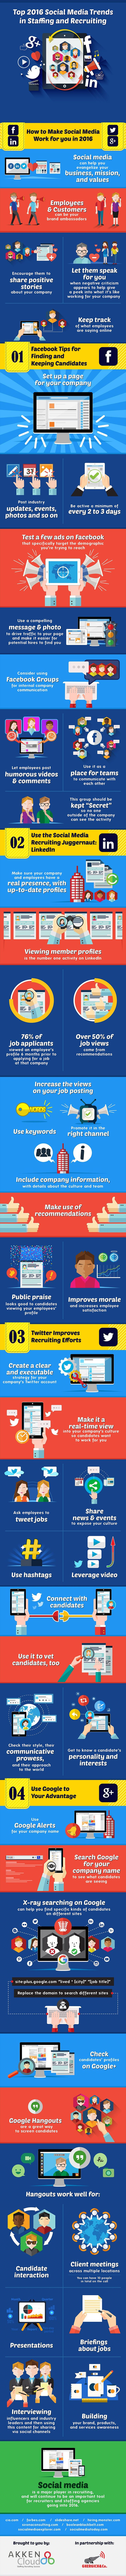 How Is Social Media Being Used For Staffing And Recruiting? #infographic